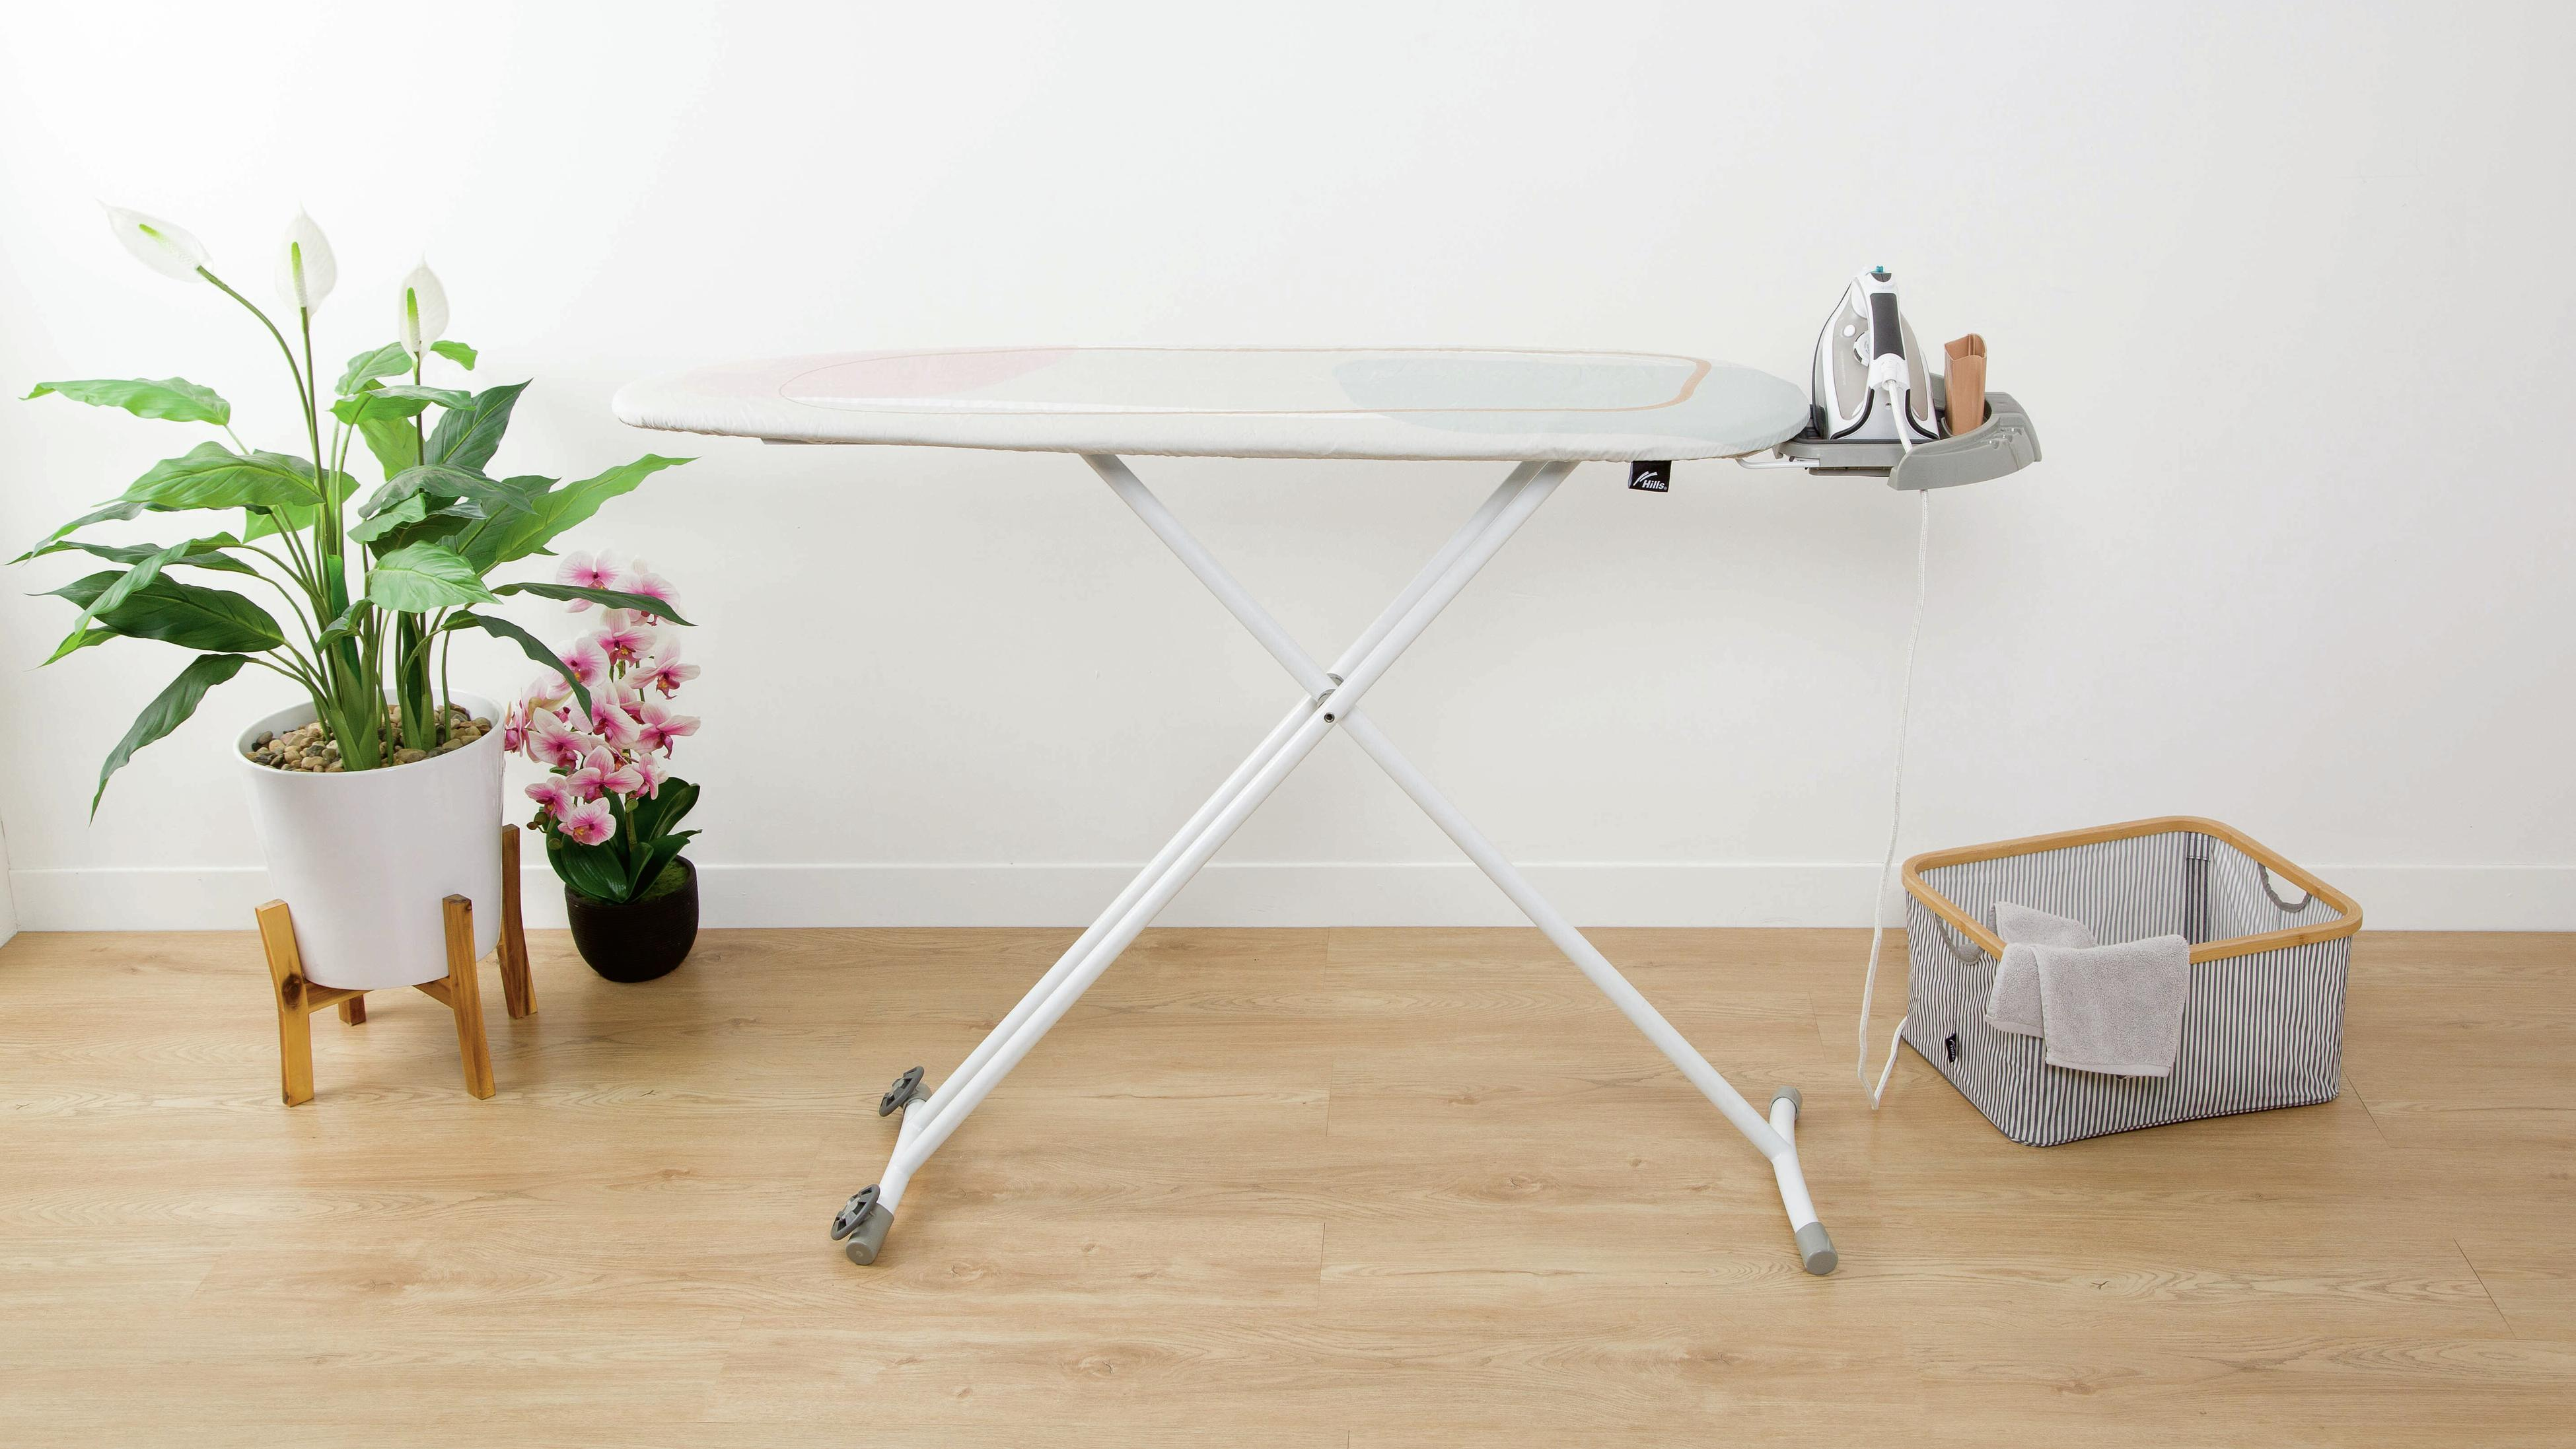 Ironing board, iron and clothes basket in a living room